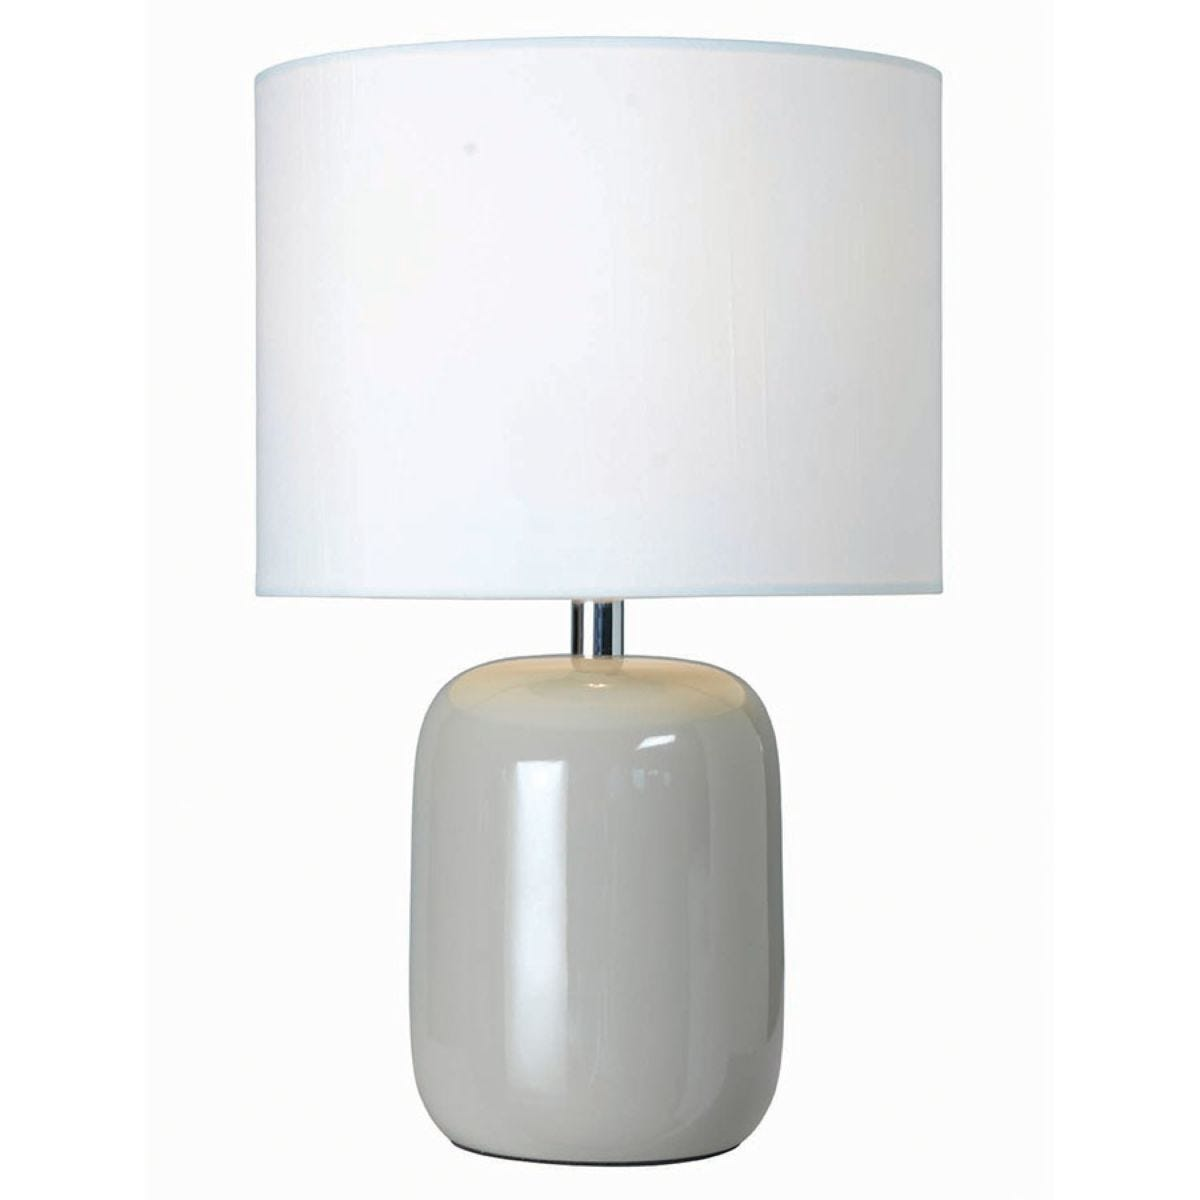 Village At Home Fenda Table Lamp - Putty